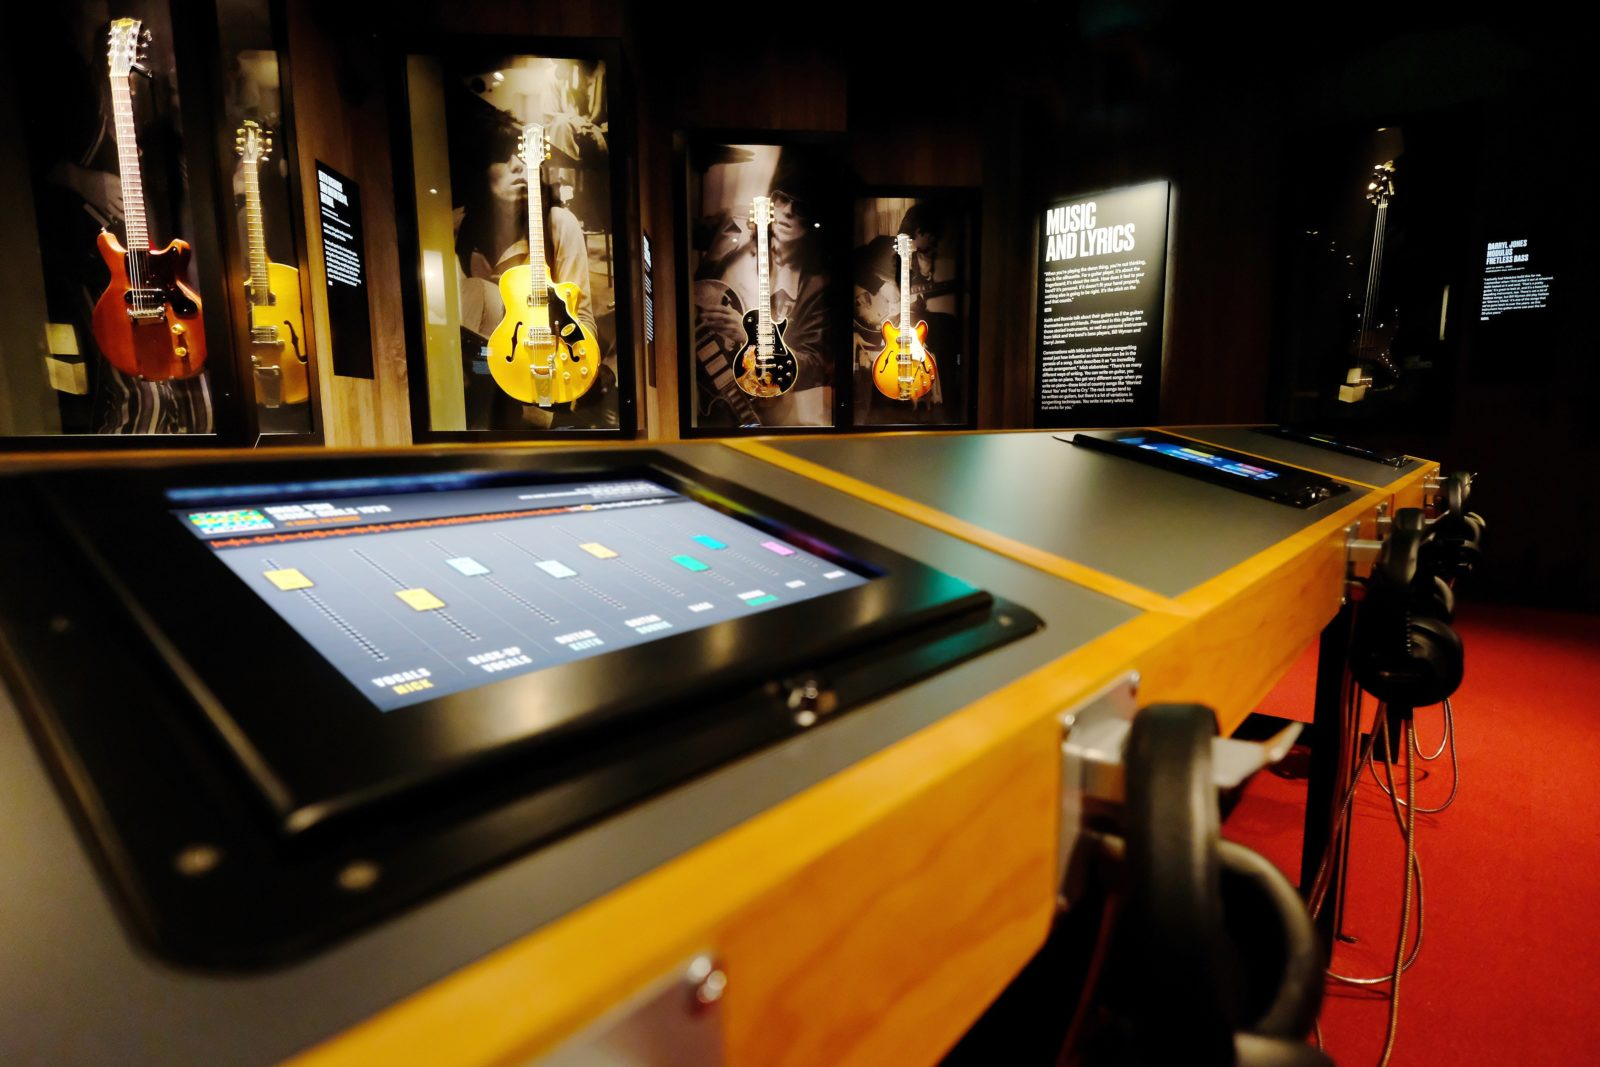 Exhibitionism is an interactive music experience